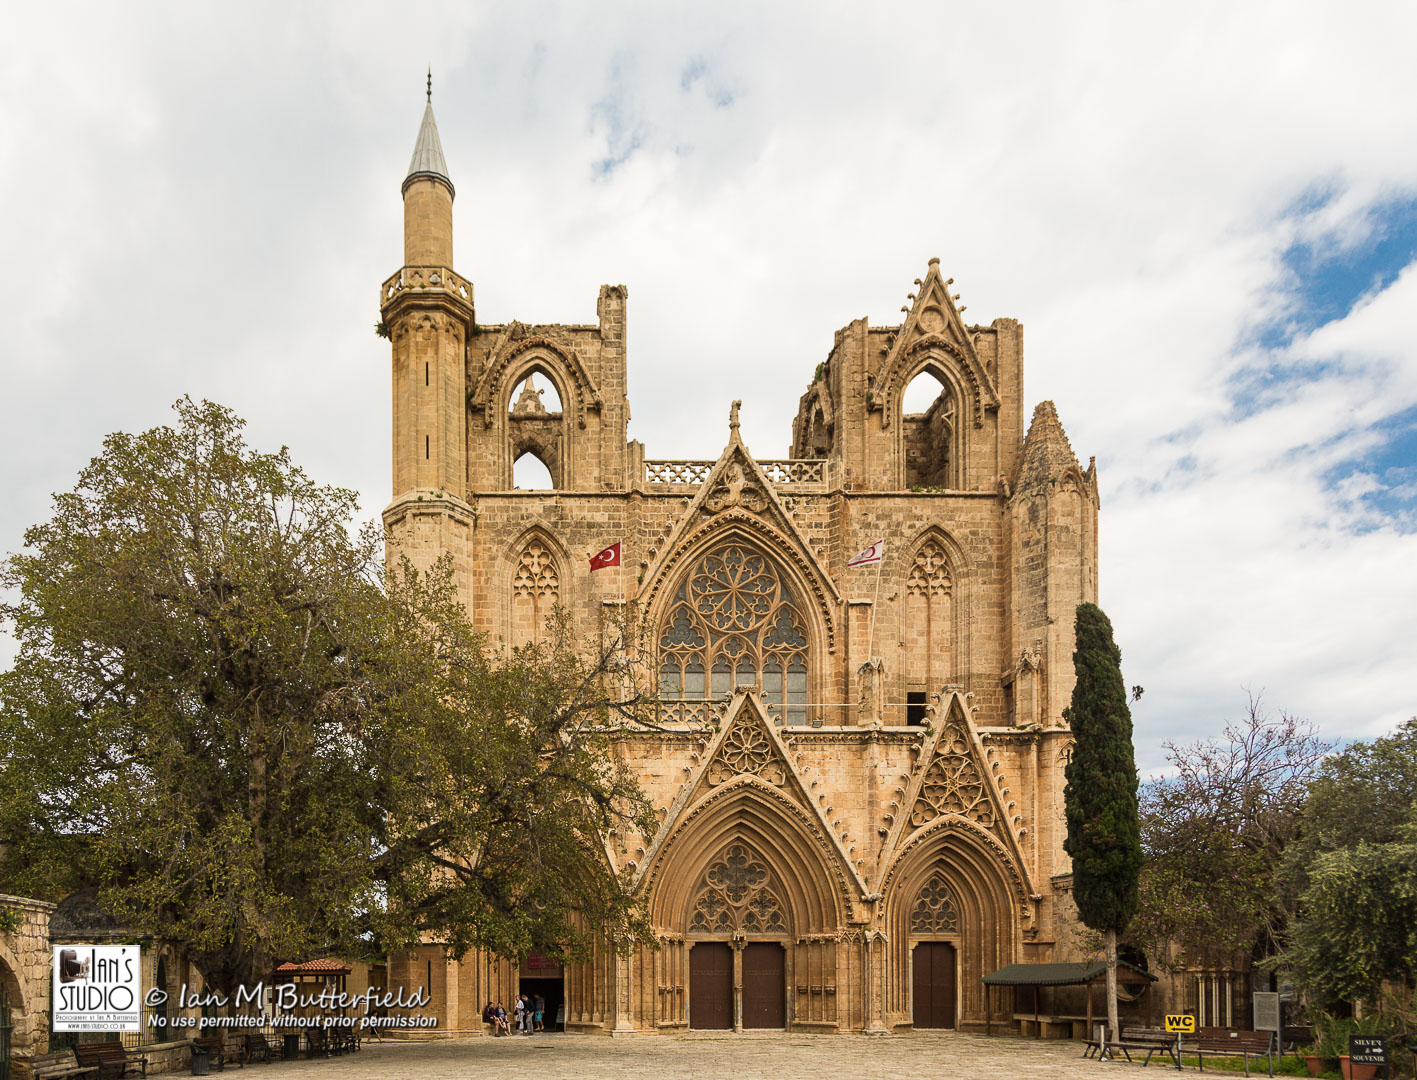 POTD 11 Apr 2019: The Cathedral/Mosque of Famagusta